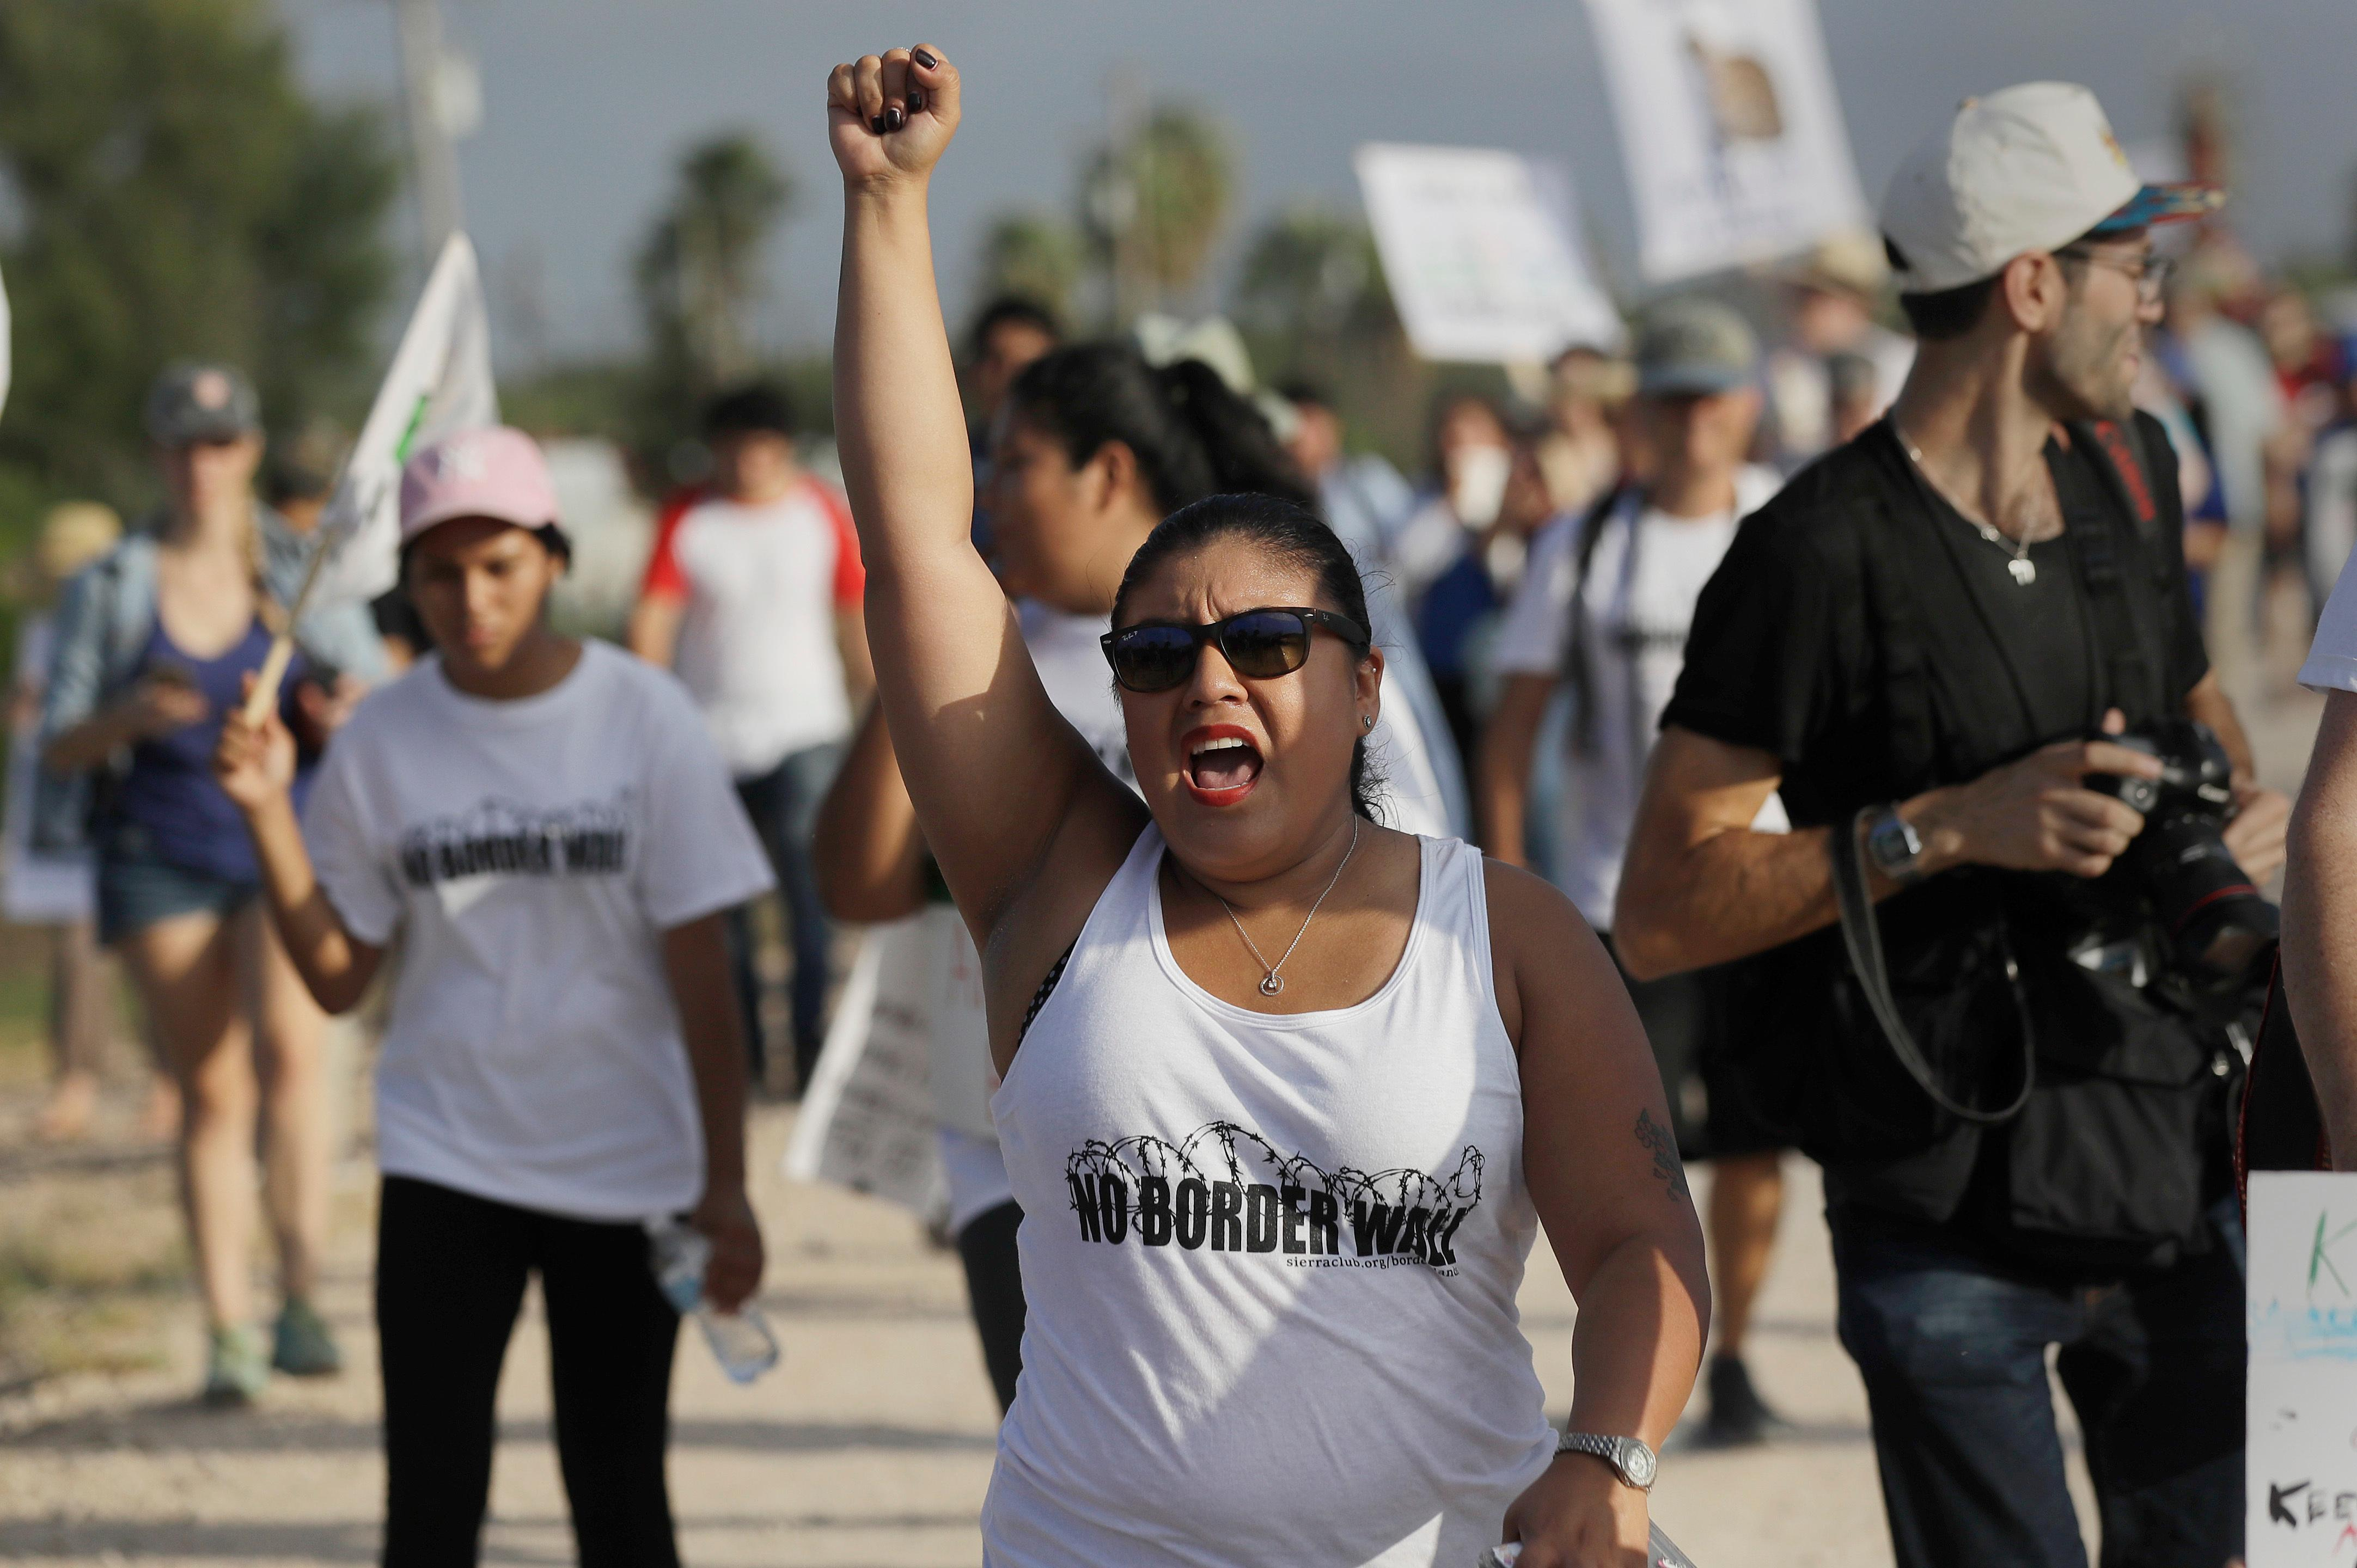 Diane Landers raises her fist as she chants during a march along a levee toward the Rio Grande to oppose the wall the U.S. government wants to build on the river separating Texas and Mexico, Saturday, Aug. 12, 2017, in Mission, Texas. The area would be the target of new barrier construction under the Trump administration's current plan. (AP Photo/Eric Gay)